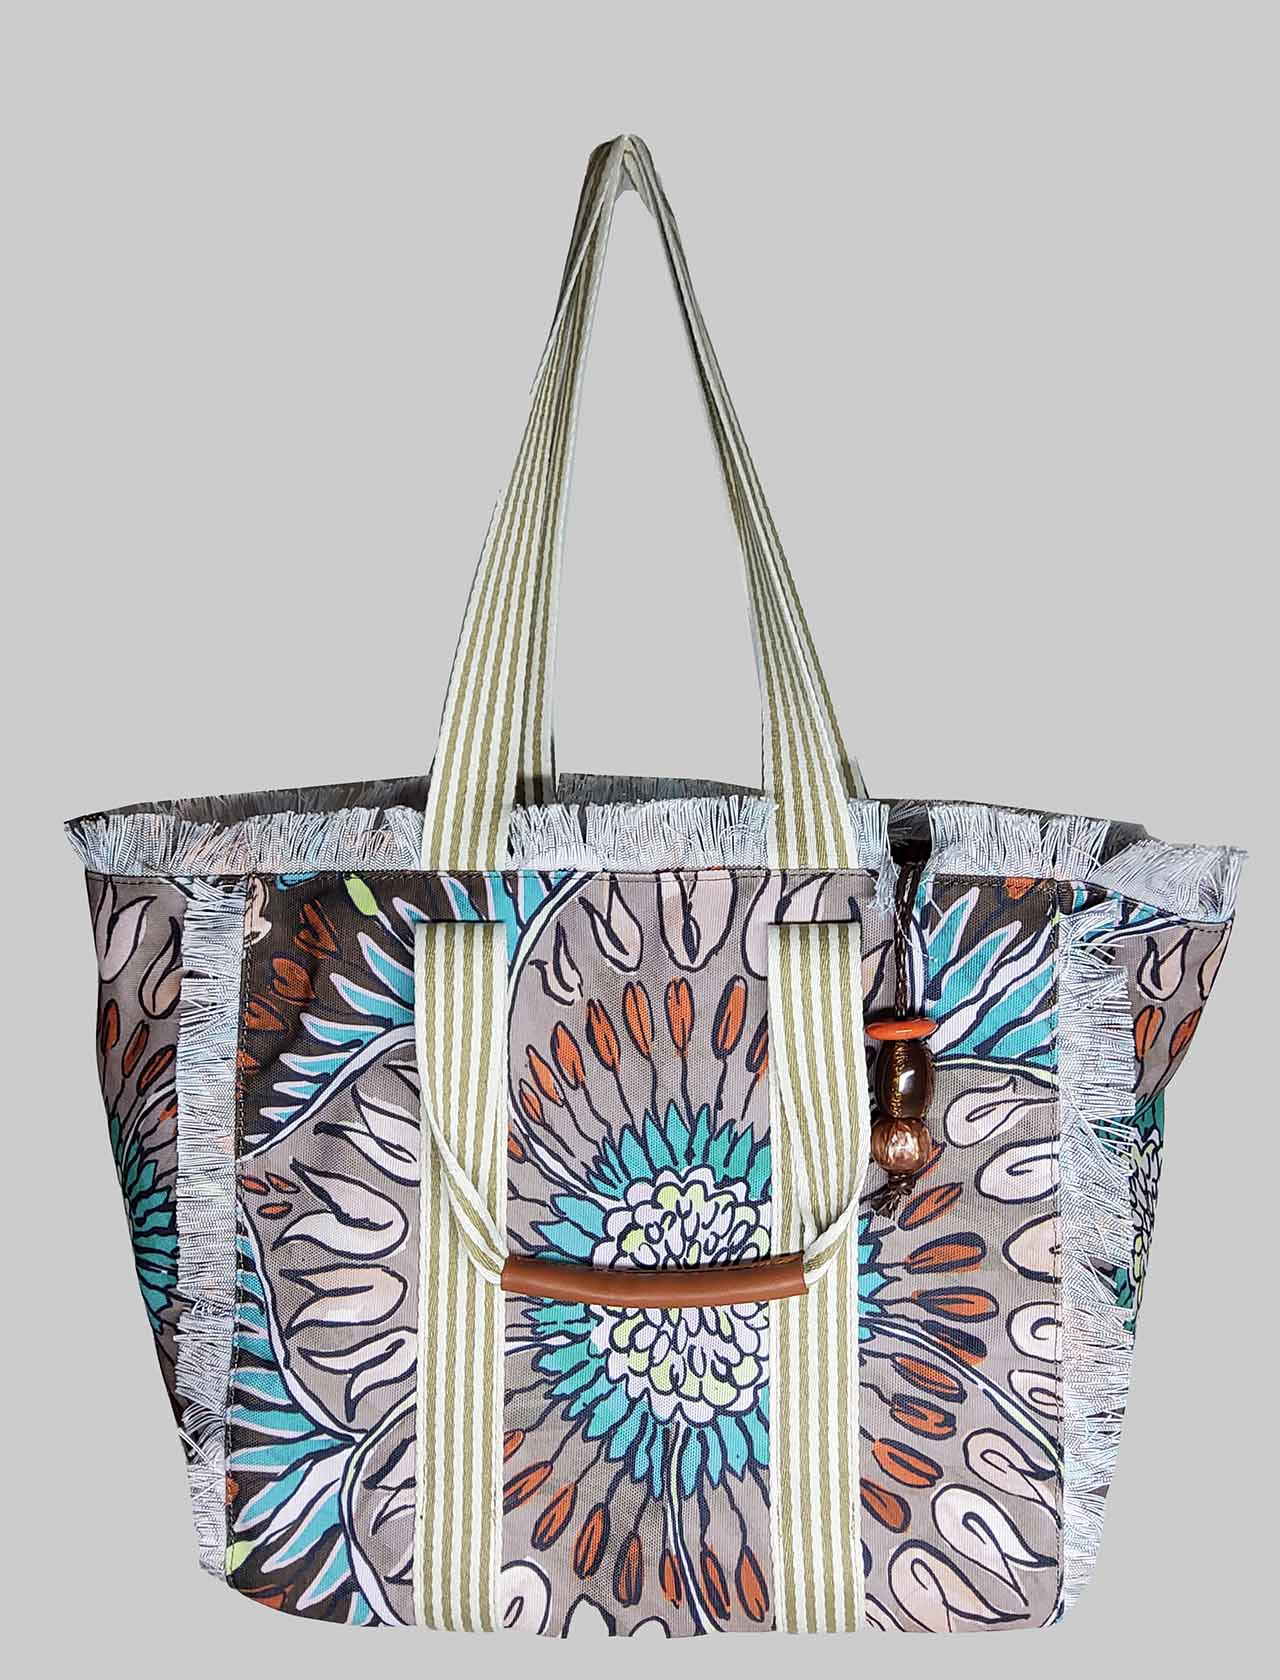 Women's Summer Breakfast Shopping Bag in Brown and Taupe Patterned Cotton Maliparmi | Bags and backpacks | BH026010134B4067